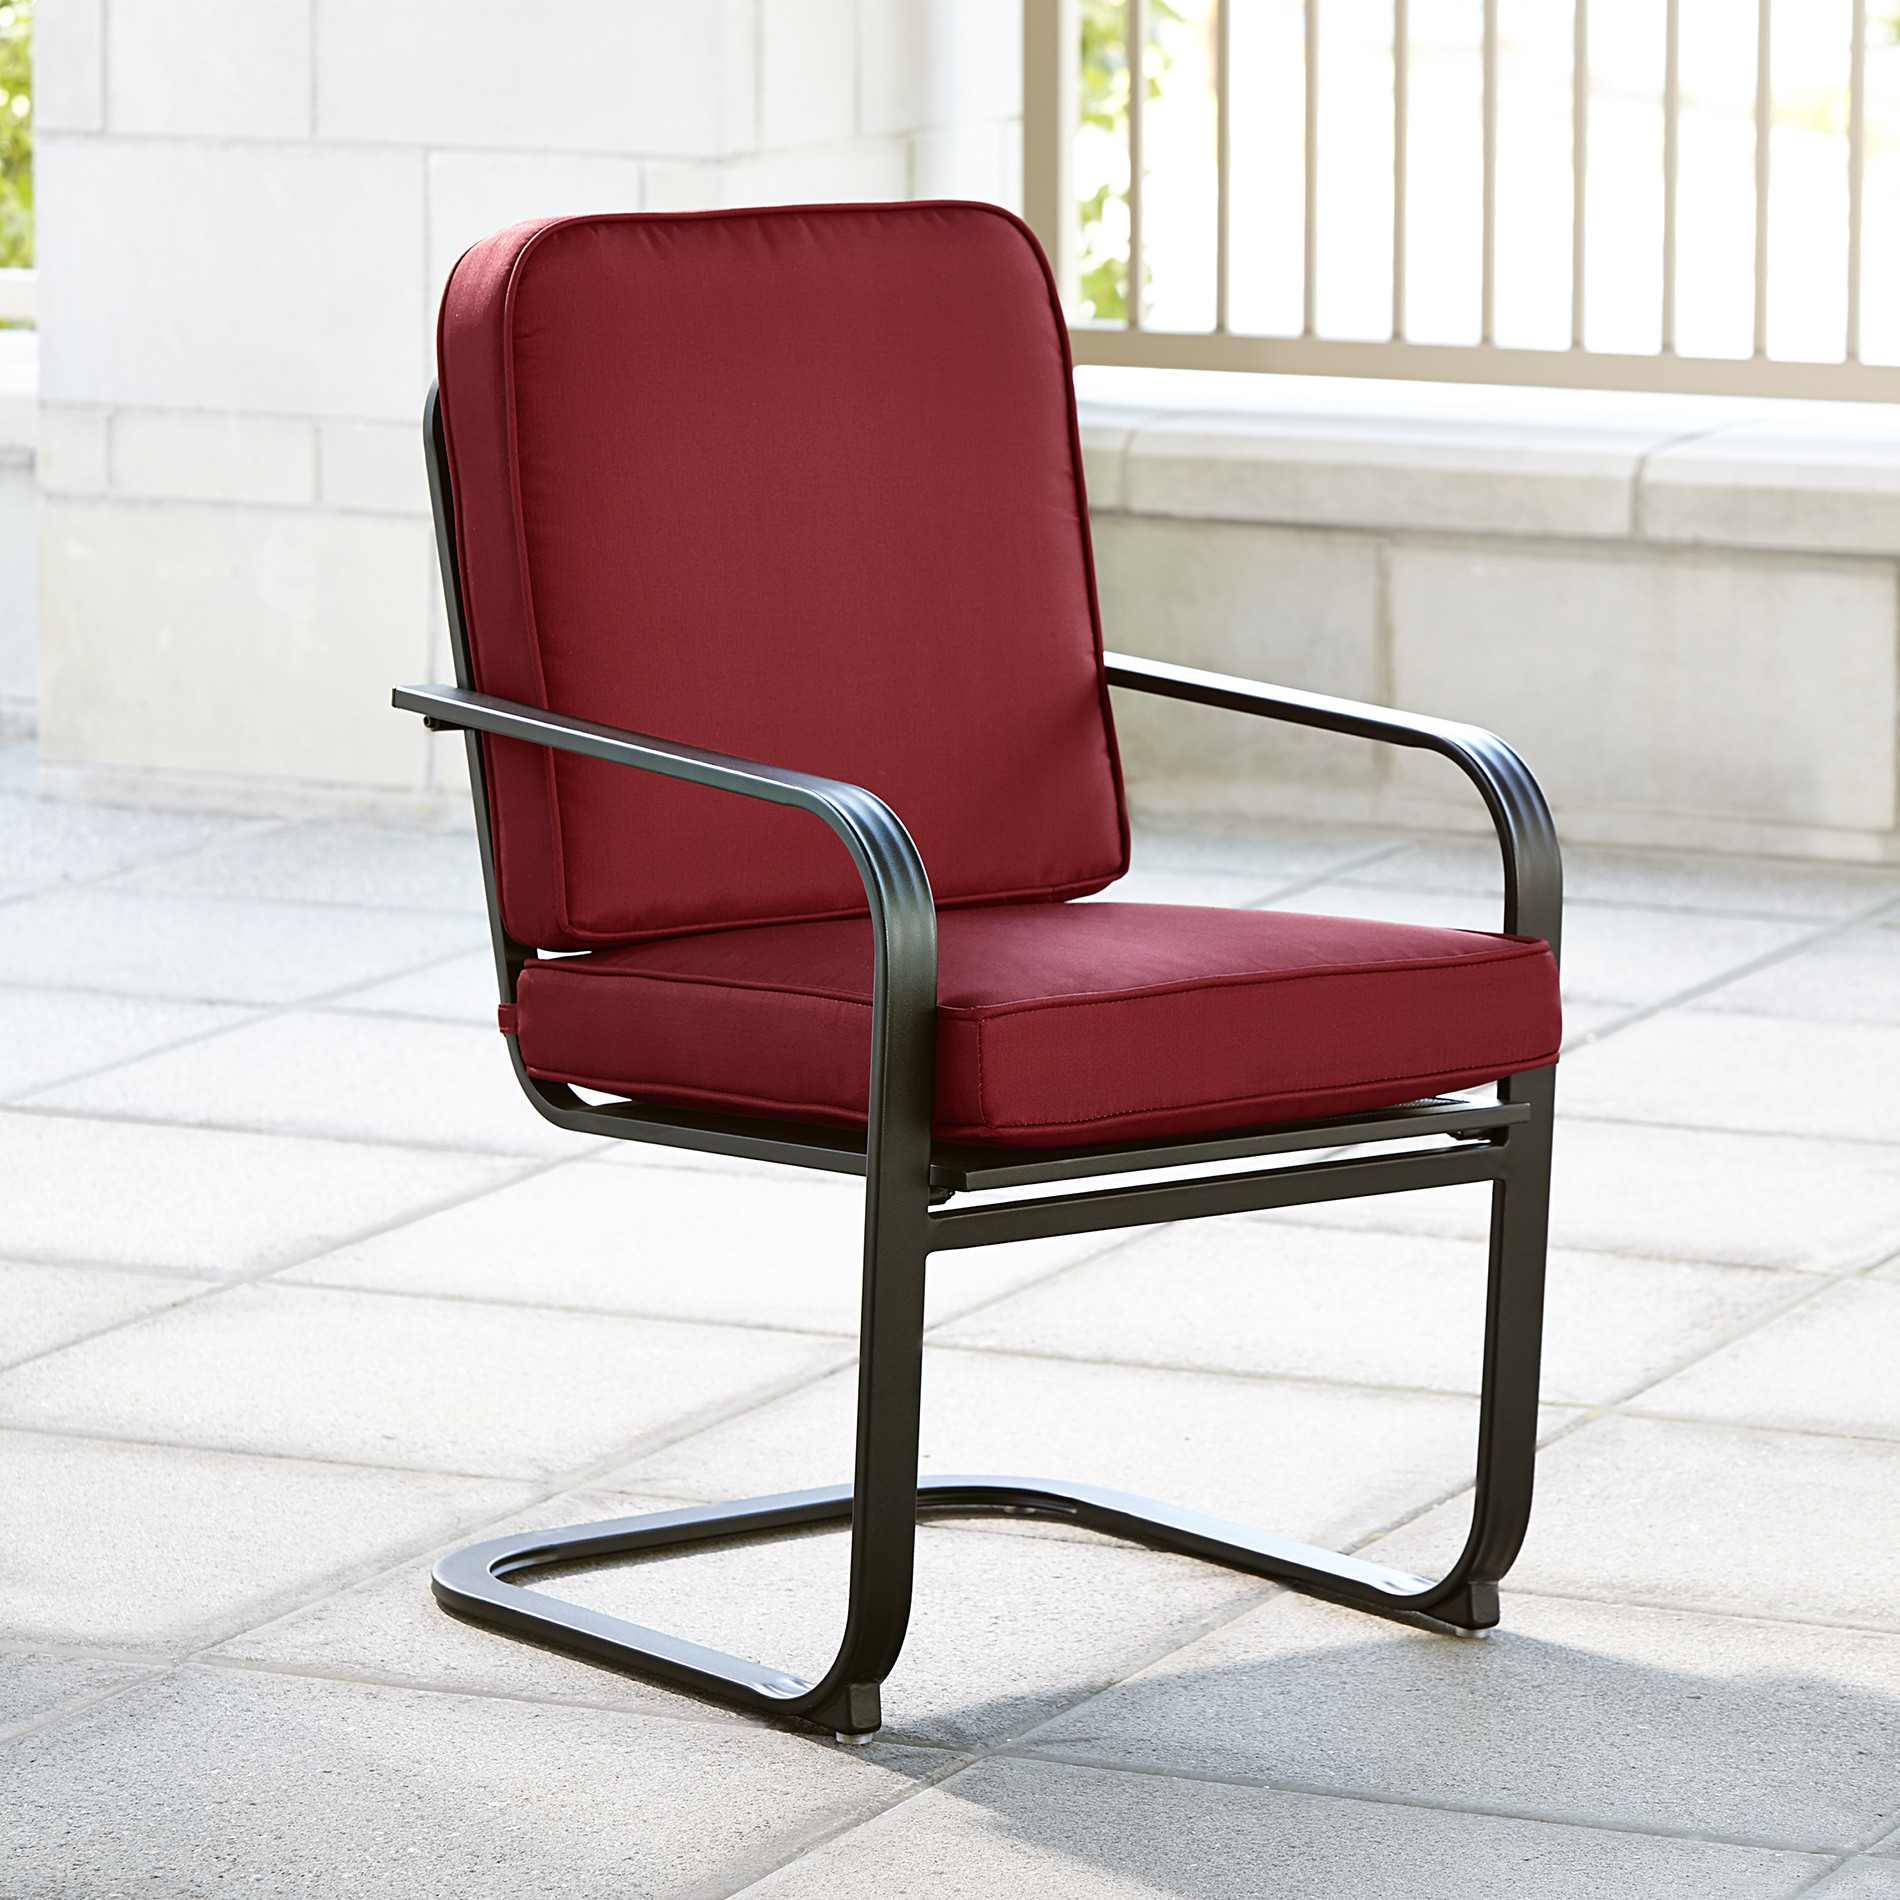 Single Chairs Essential Garden Bisbee Single Dining Chair Red Outdoor